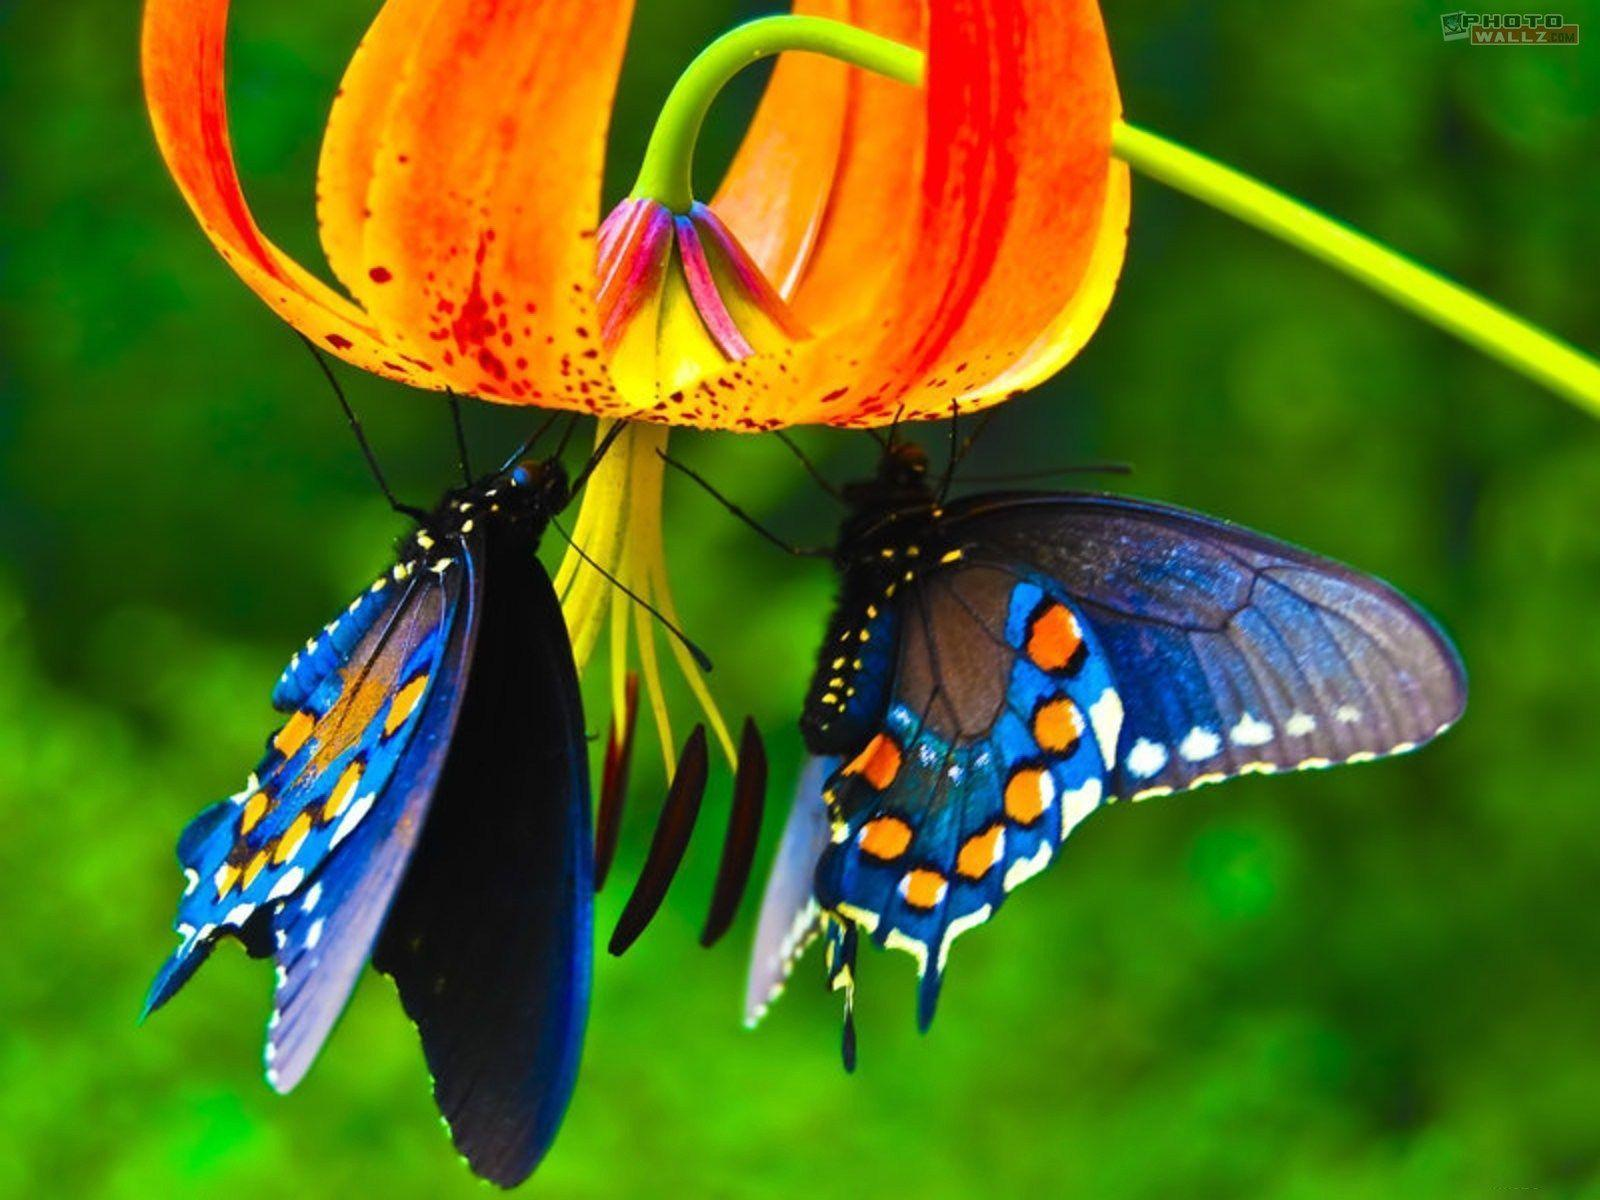 Butterfly Hd Wallpapers Wallpaper Cave